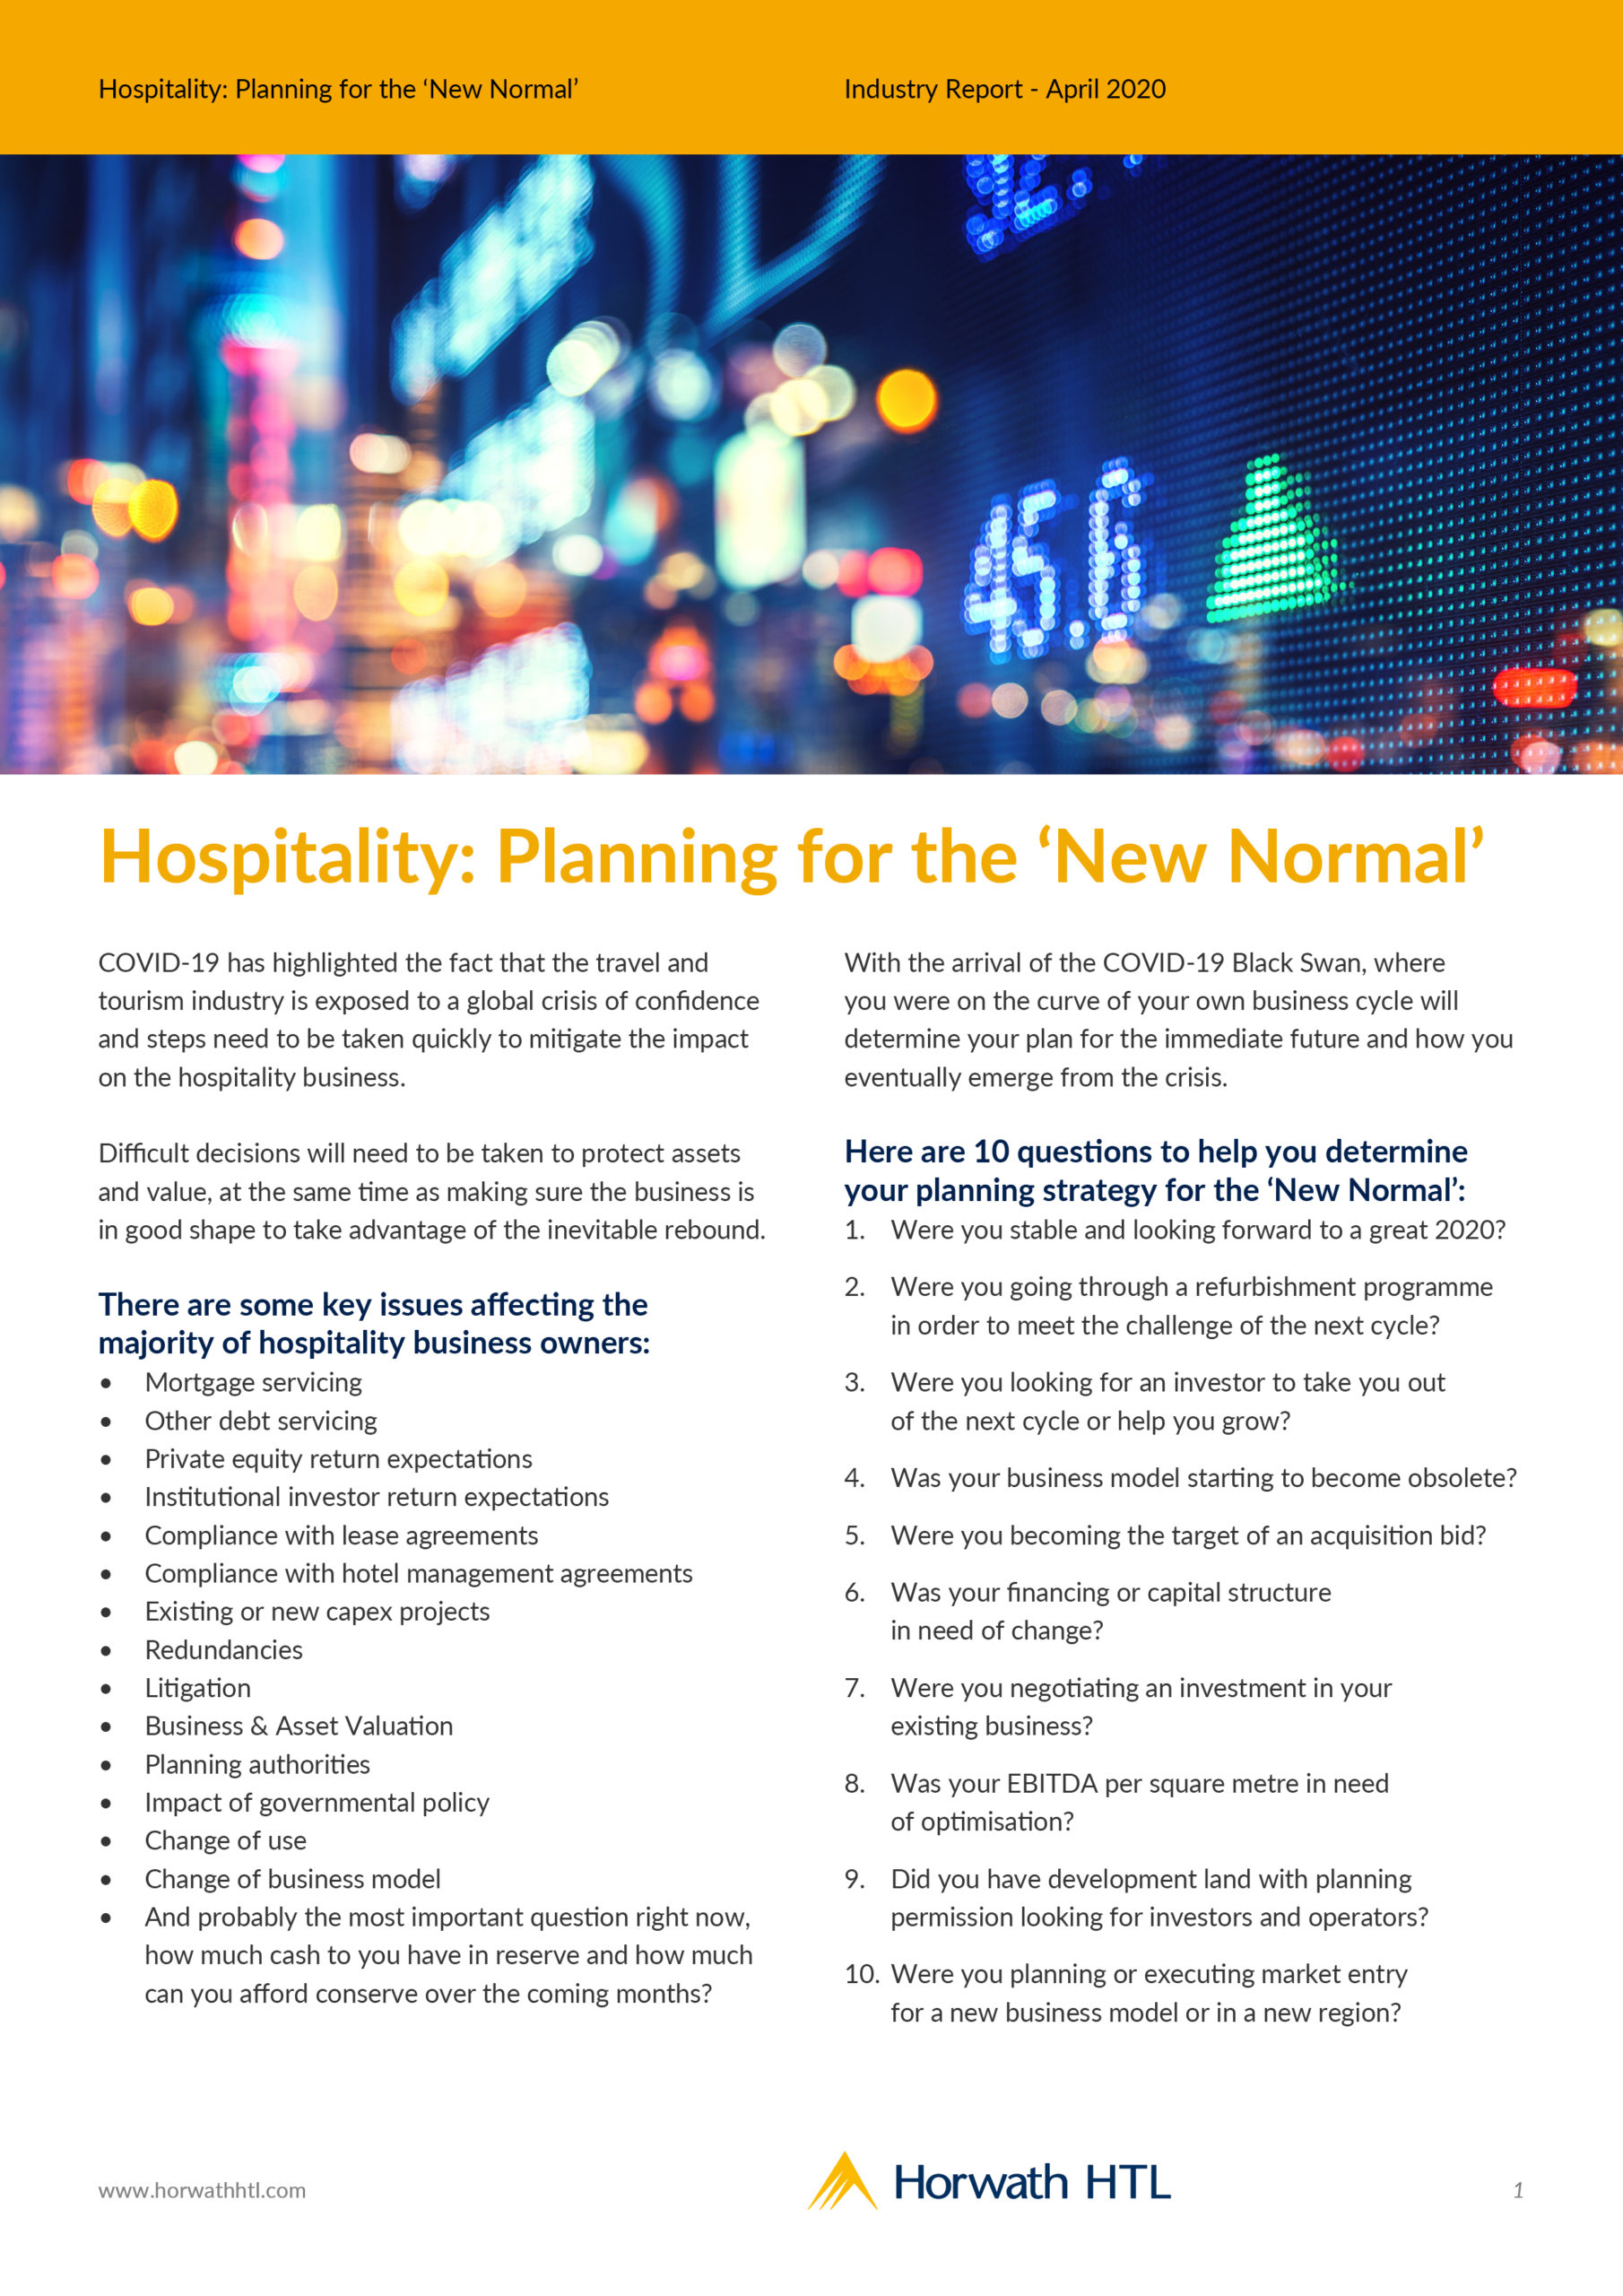 Hospitality Planning for the New Normal